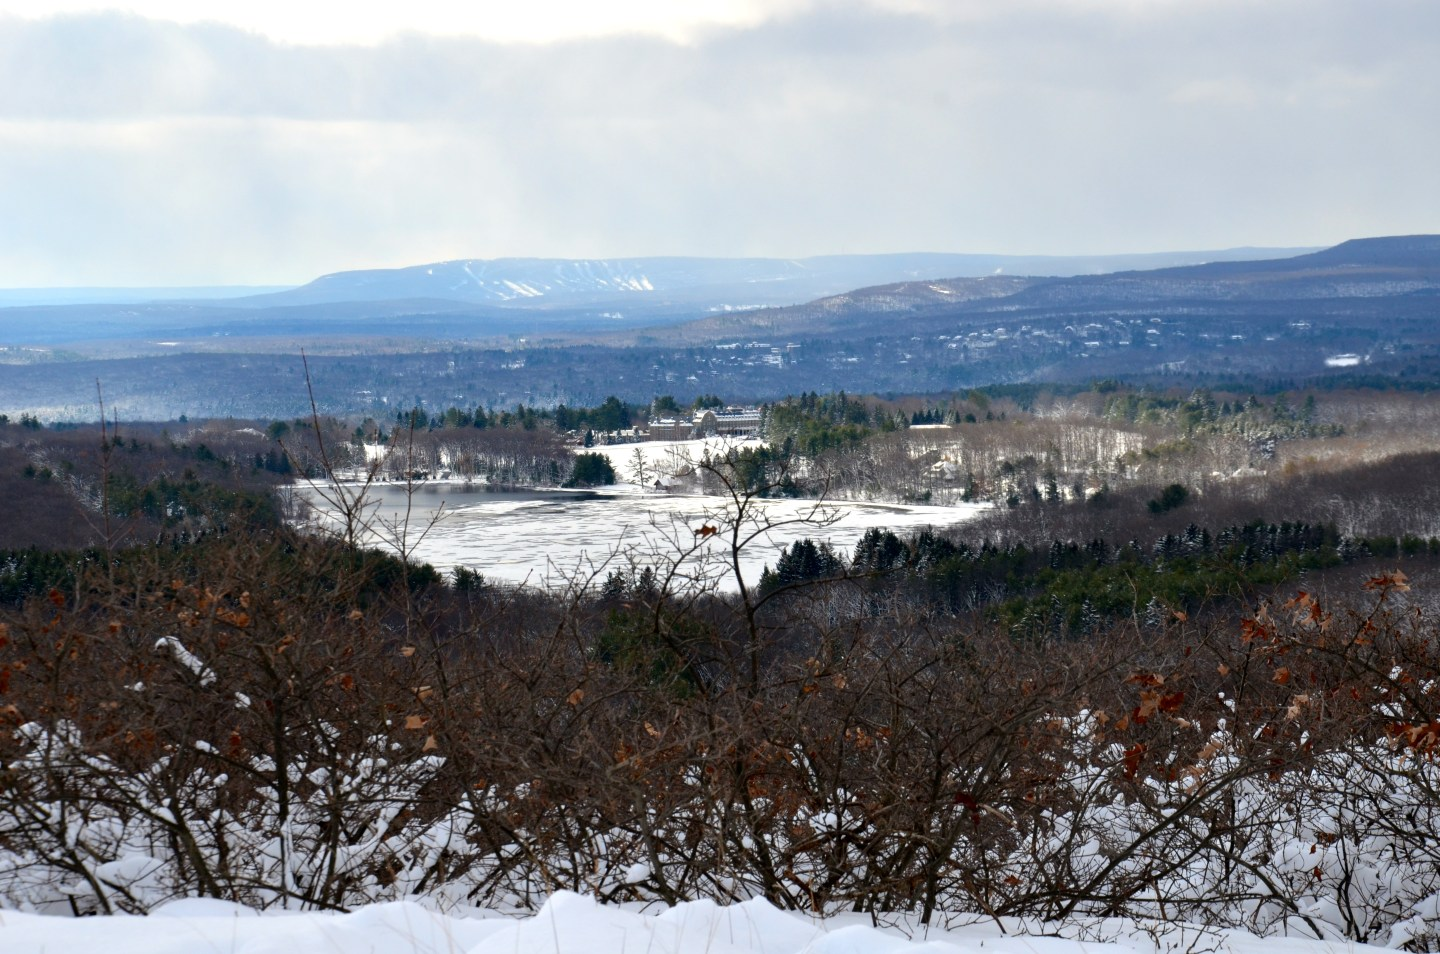 Hiking in the winter at Skytop Lodge in Pennsylvania